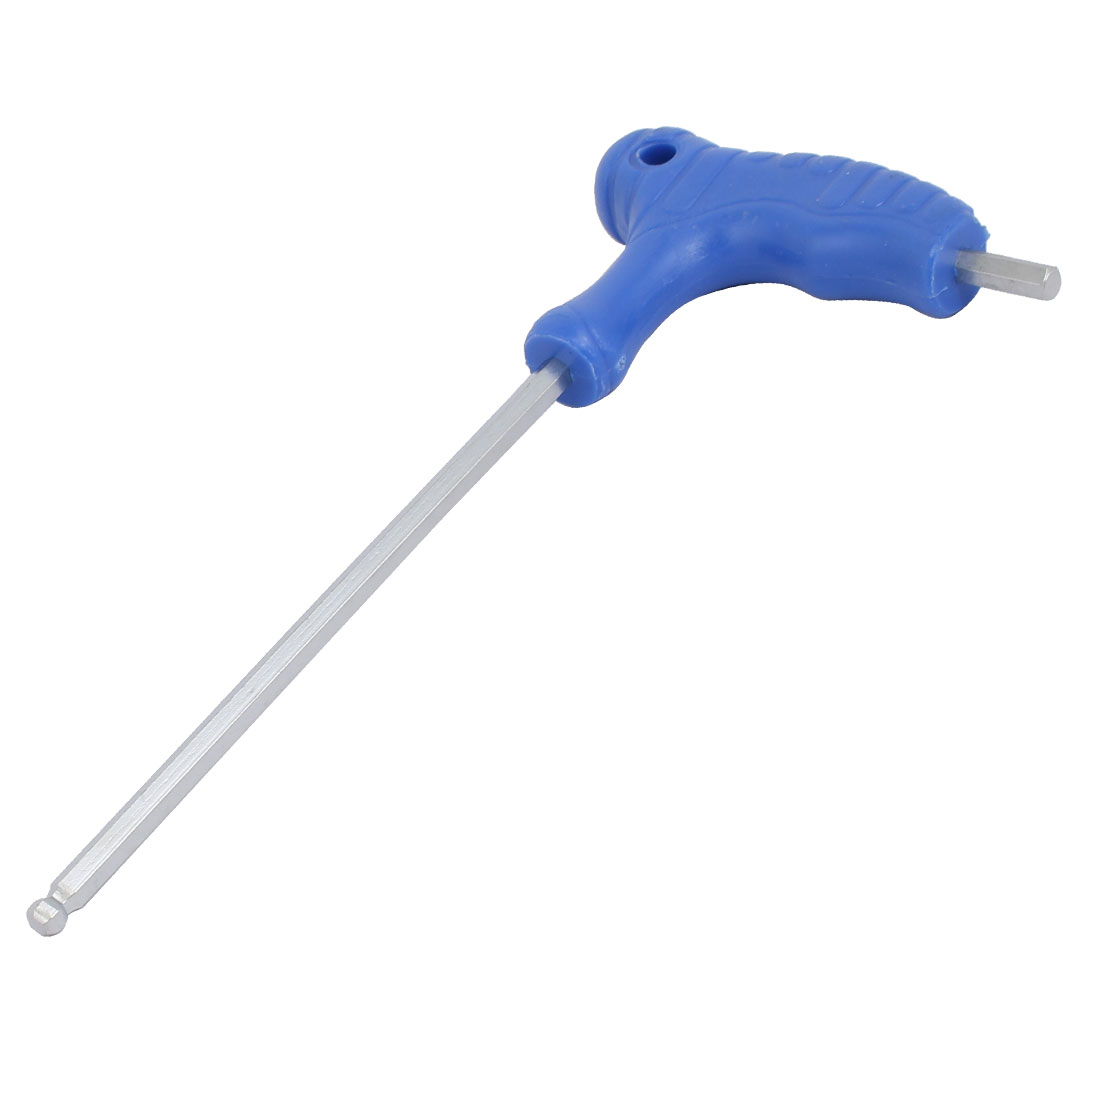 H4 4mm Tip Shaft T Handle Ball Head Hex Hexagon Key Wrench Tool Blue